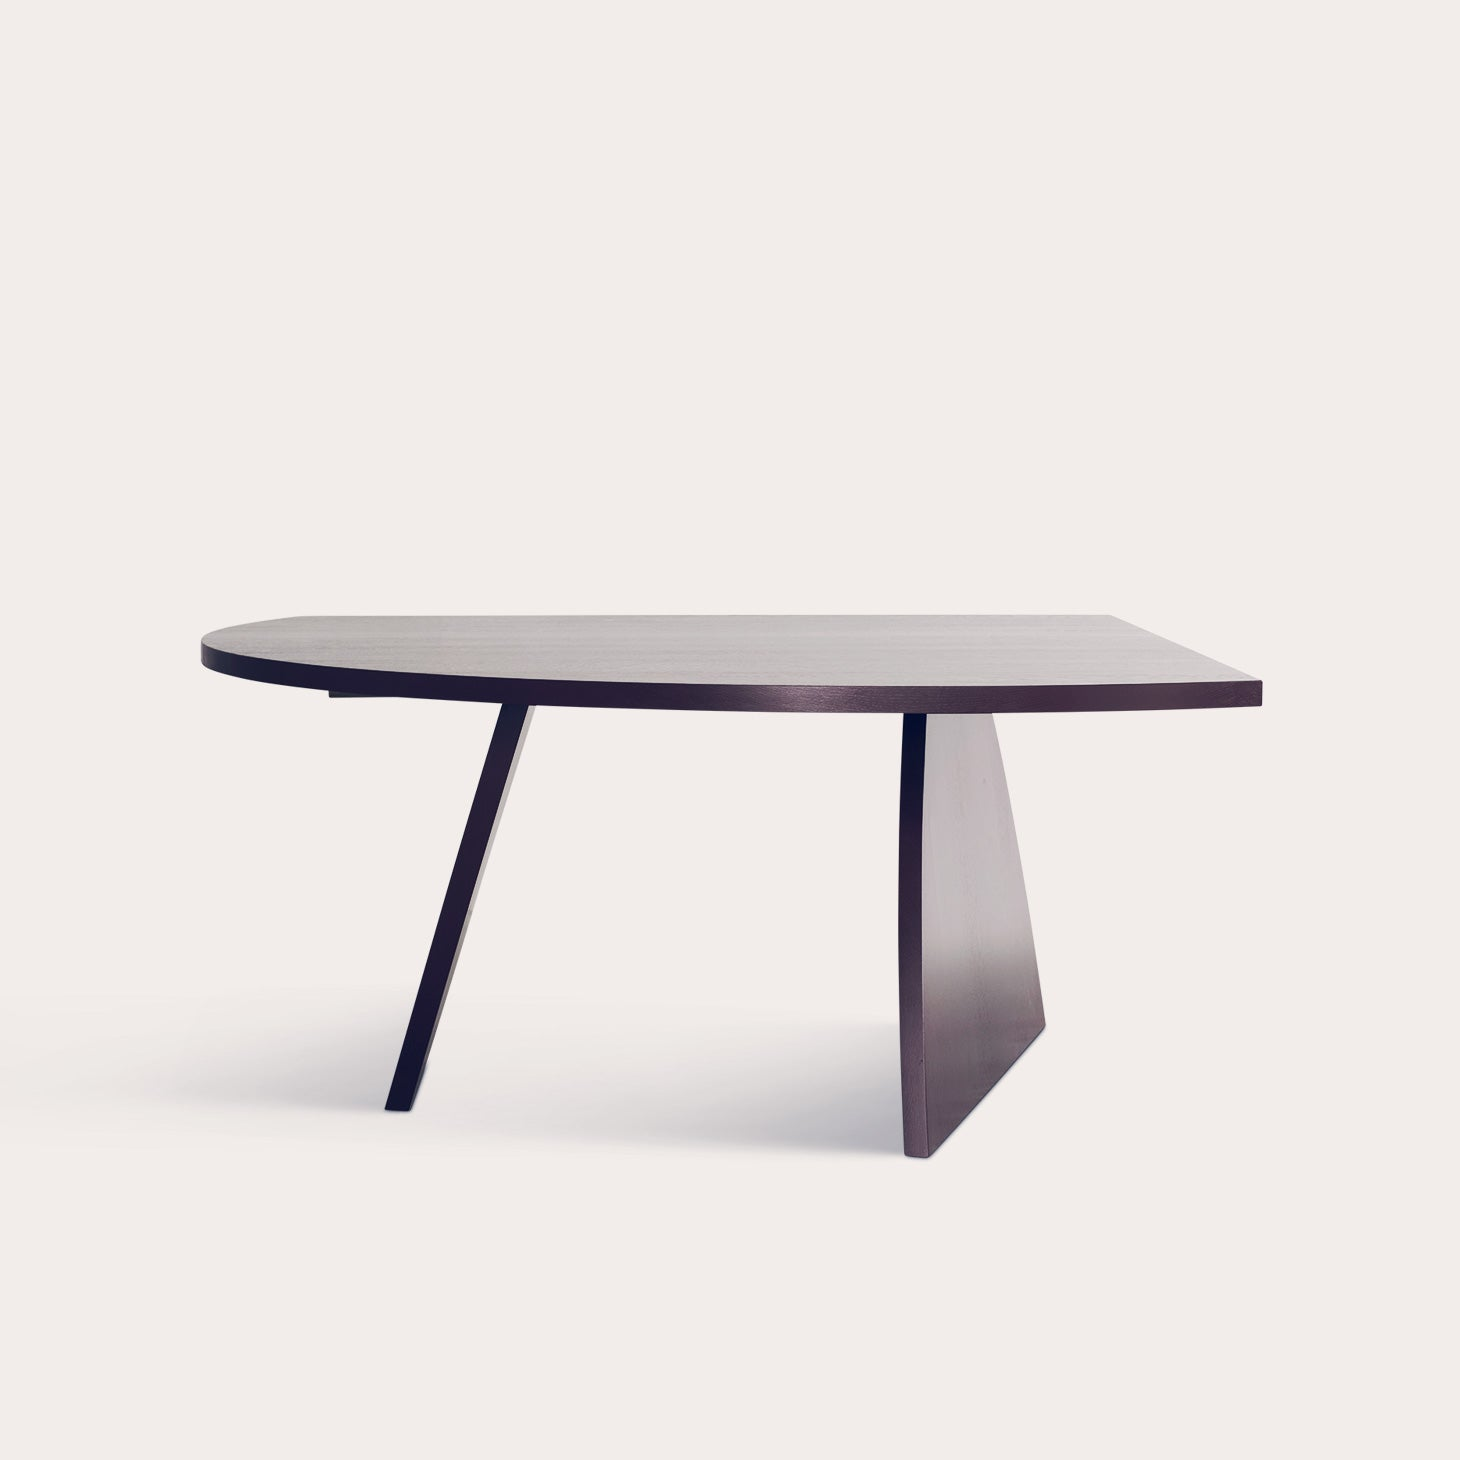 T-Elements D-Table Tables Andrea Tognon Designer Furniture Sku: 416-230-10255